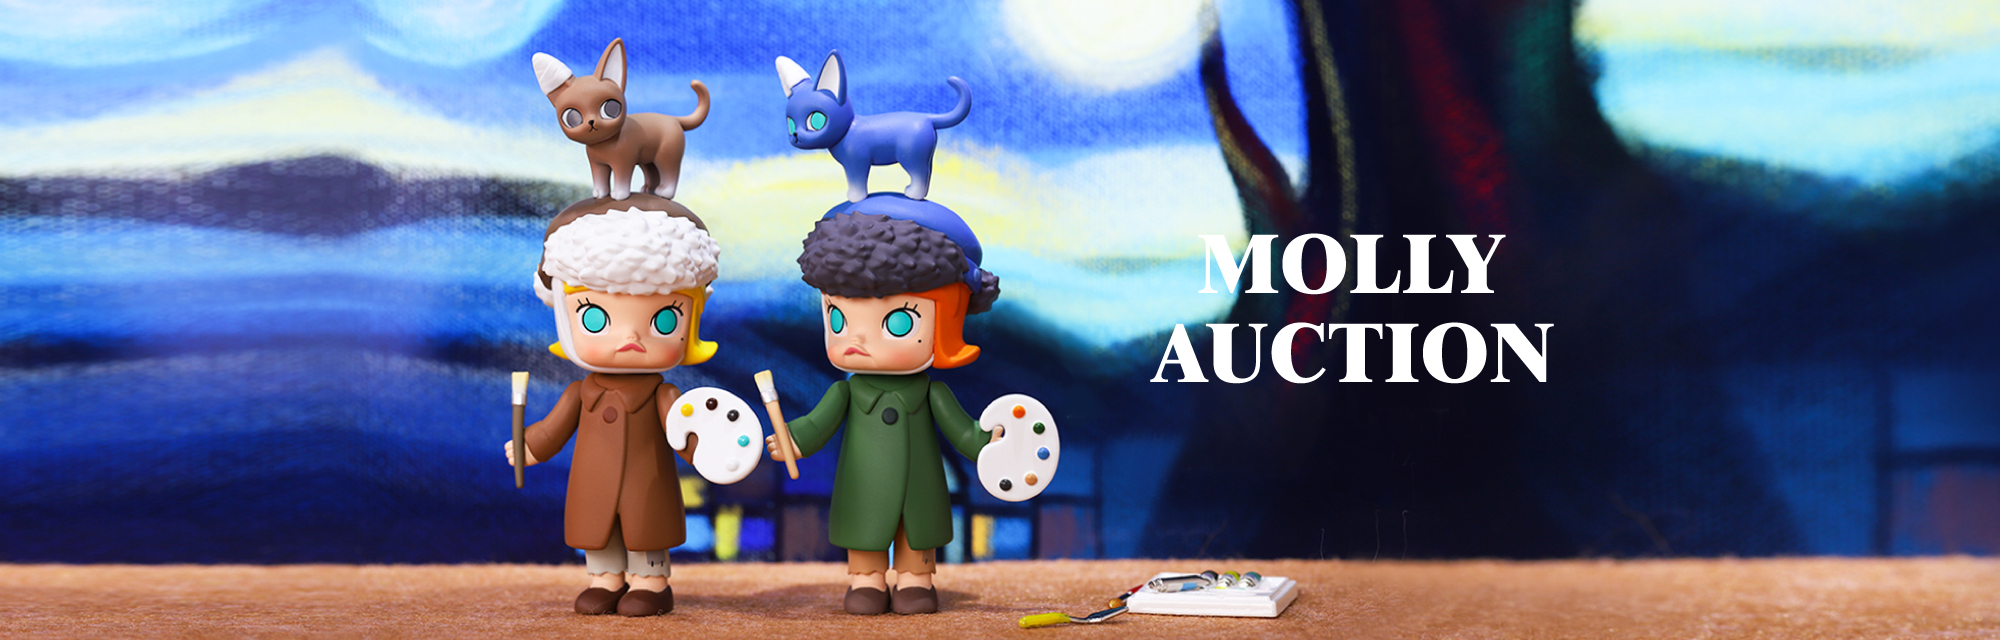 Molly Auction